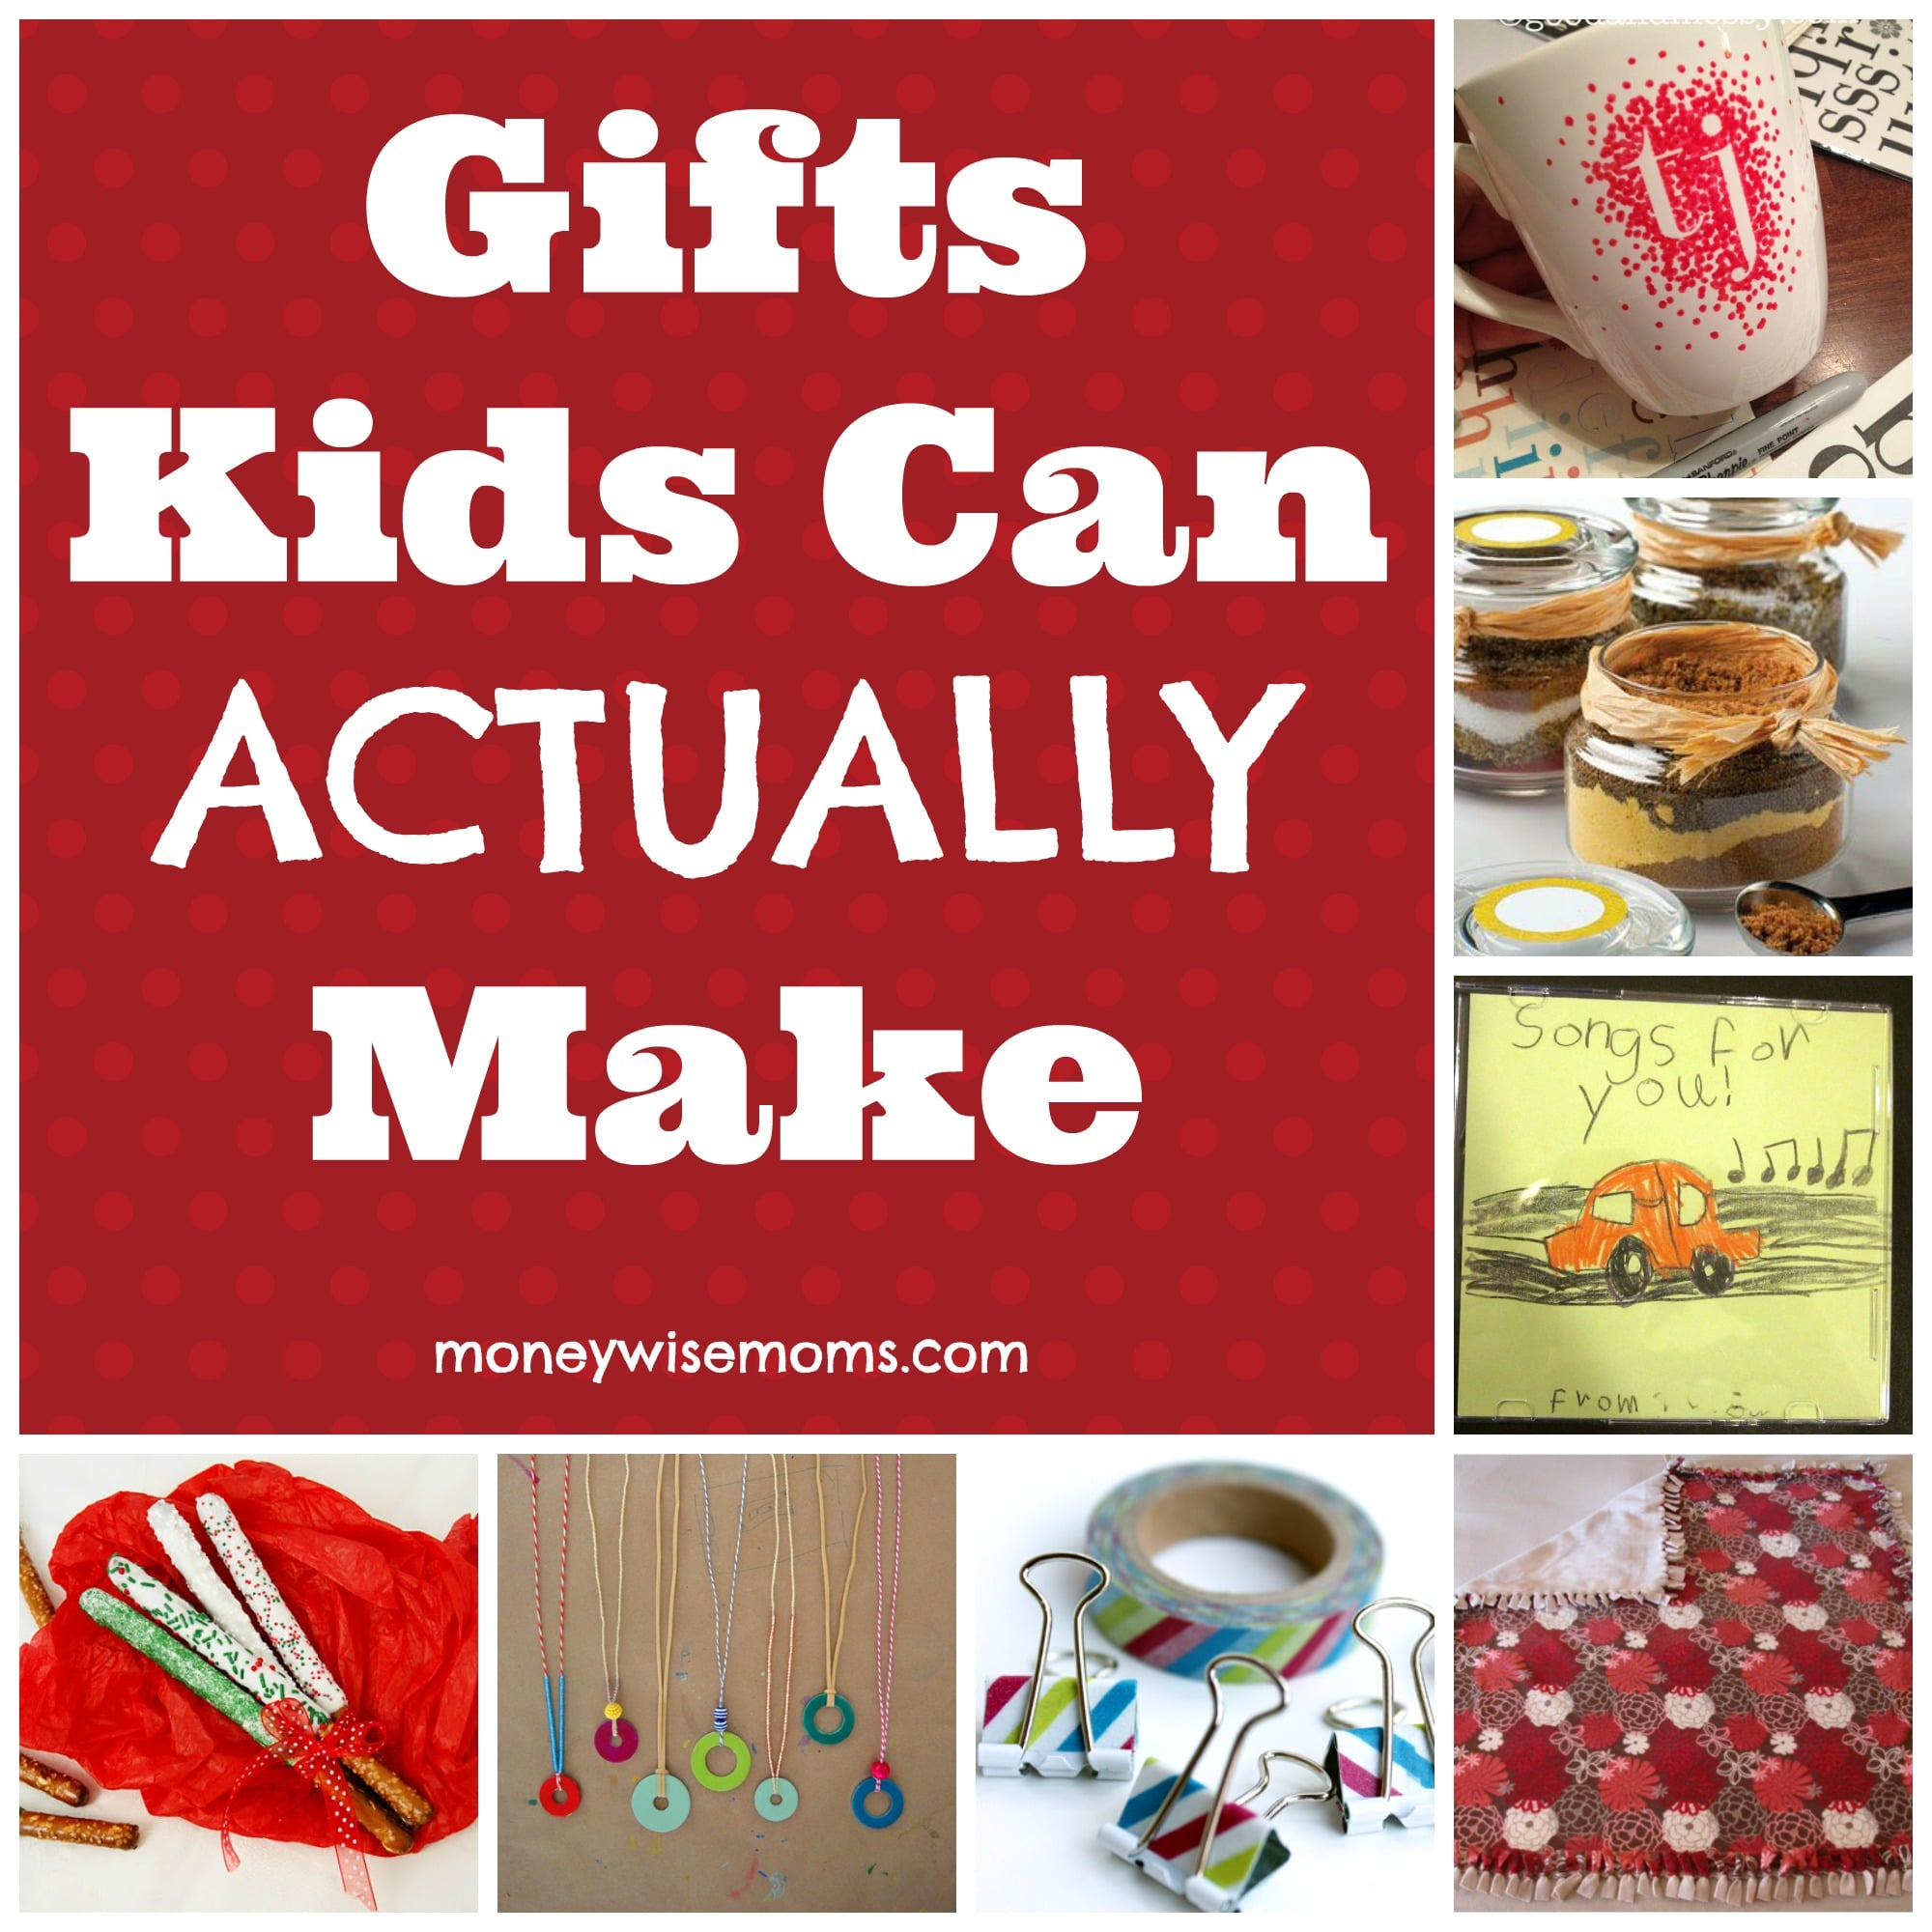 Gifts Kids Can Actually Make Moneywise Moms